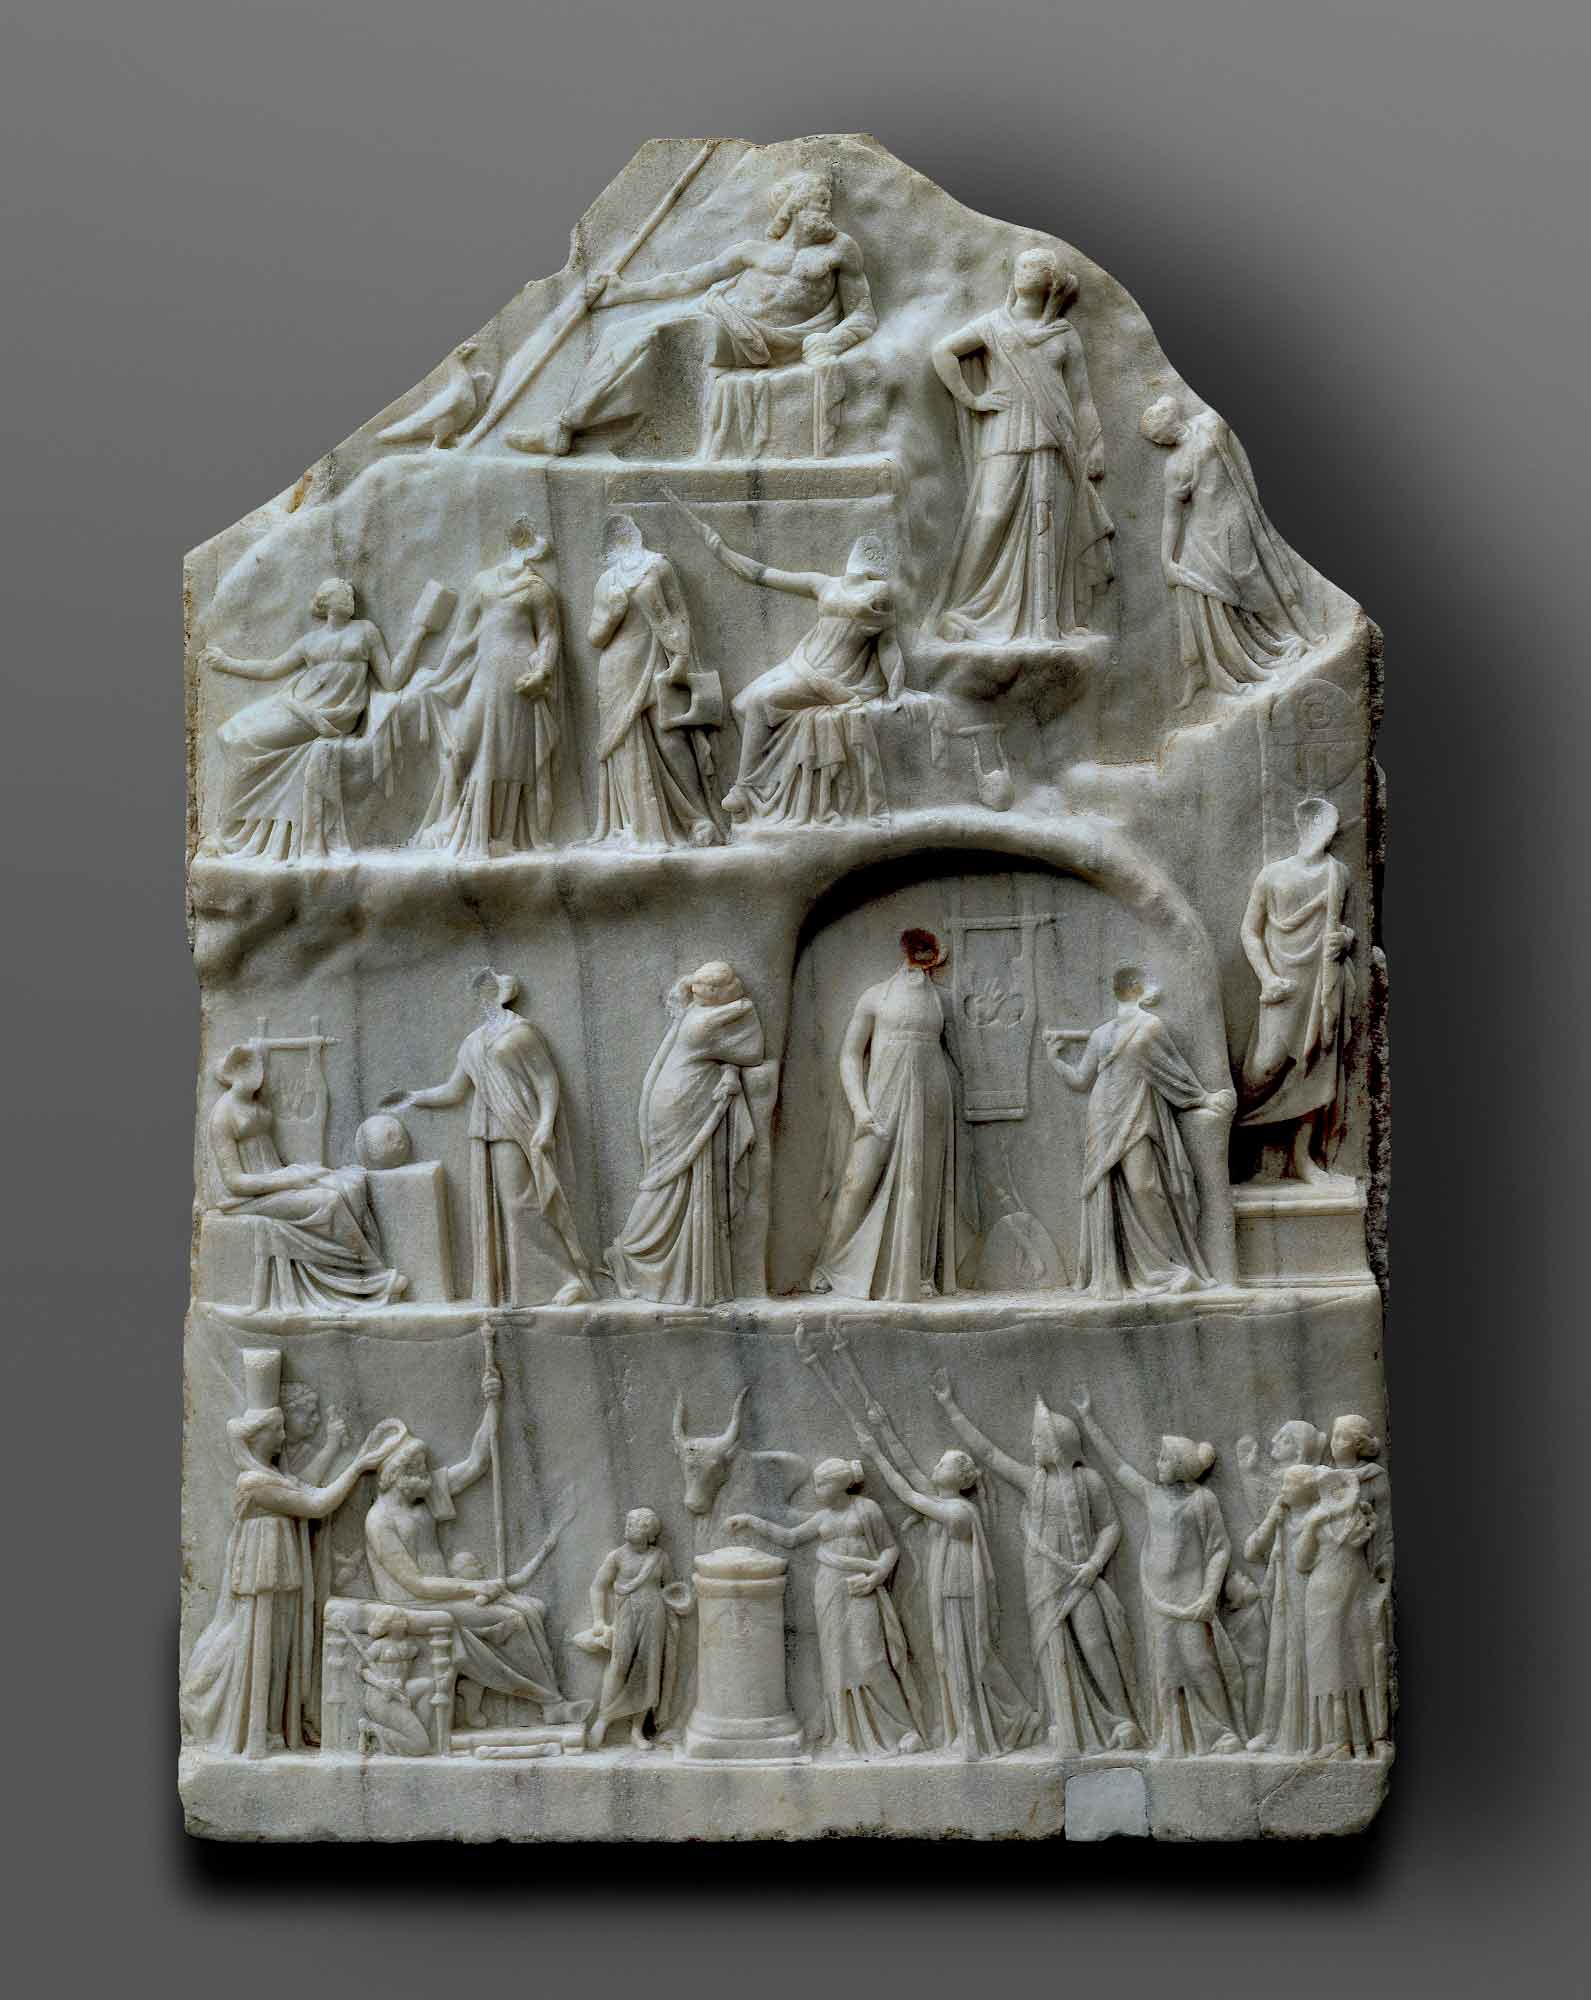 A marble block with a relief design and using a linear perspective to represent multiple figures along four rows, the top featuring a single man reclining. - click to view larger image